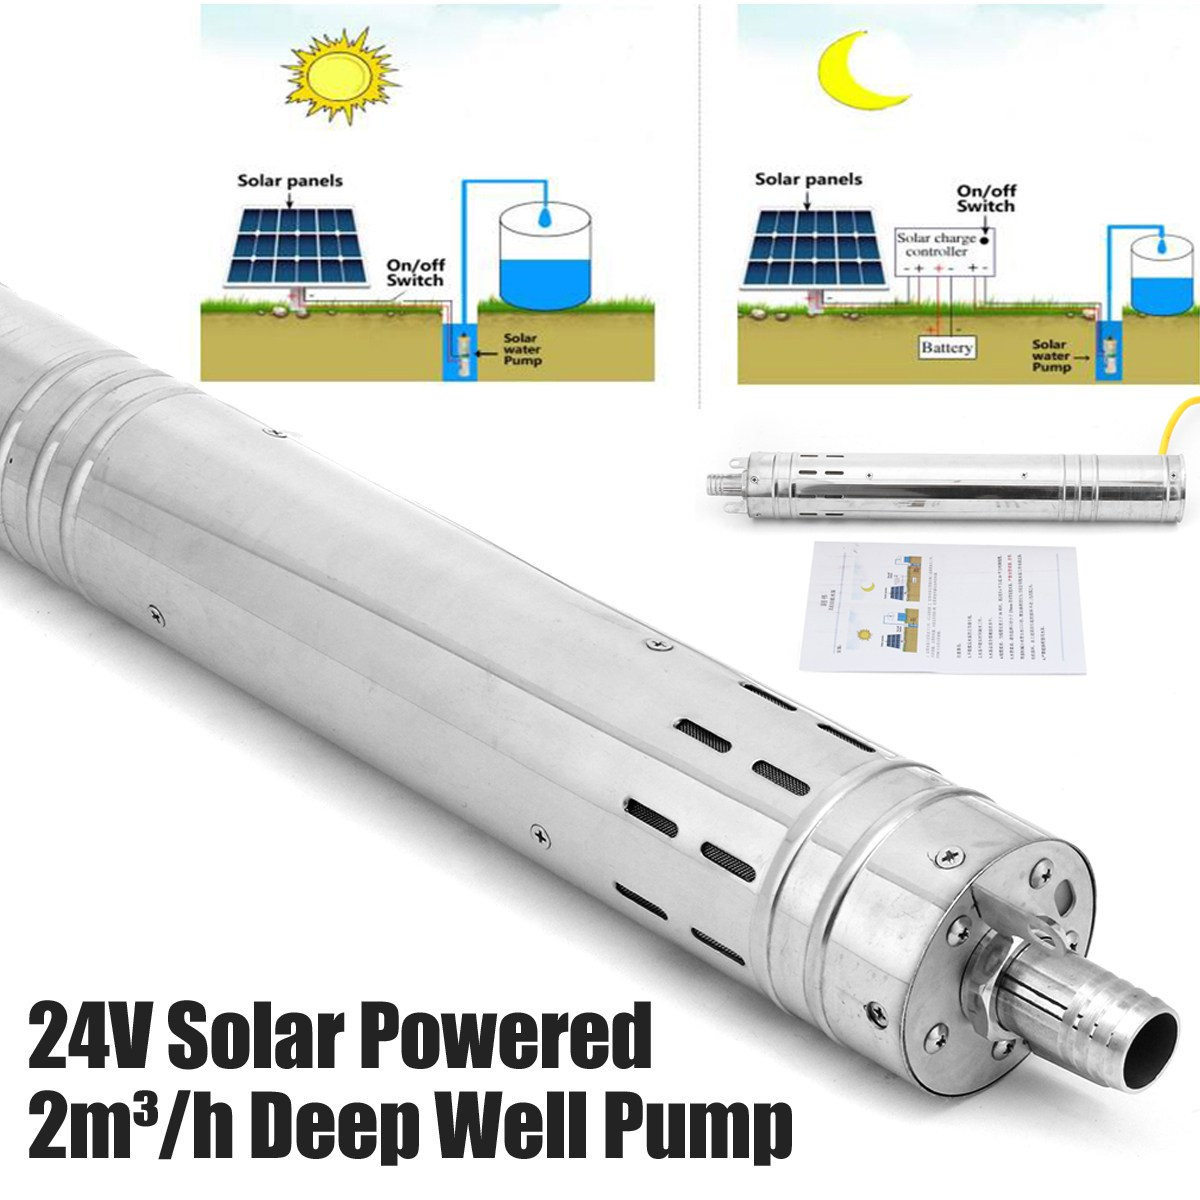 24V DC Farm & Ranch Solar Powered sewage Pump Submersibel Bore Hole Deep Well Pump mp 3500 twisted blade sewage pumping septic sewer toilet without clogging sewage pumps garbage